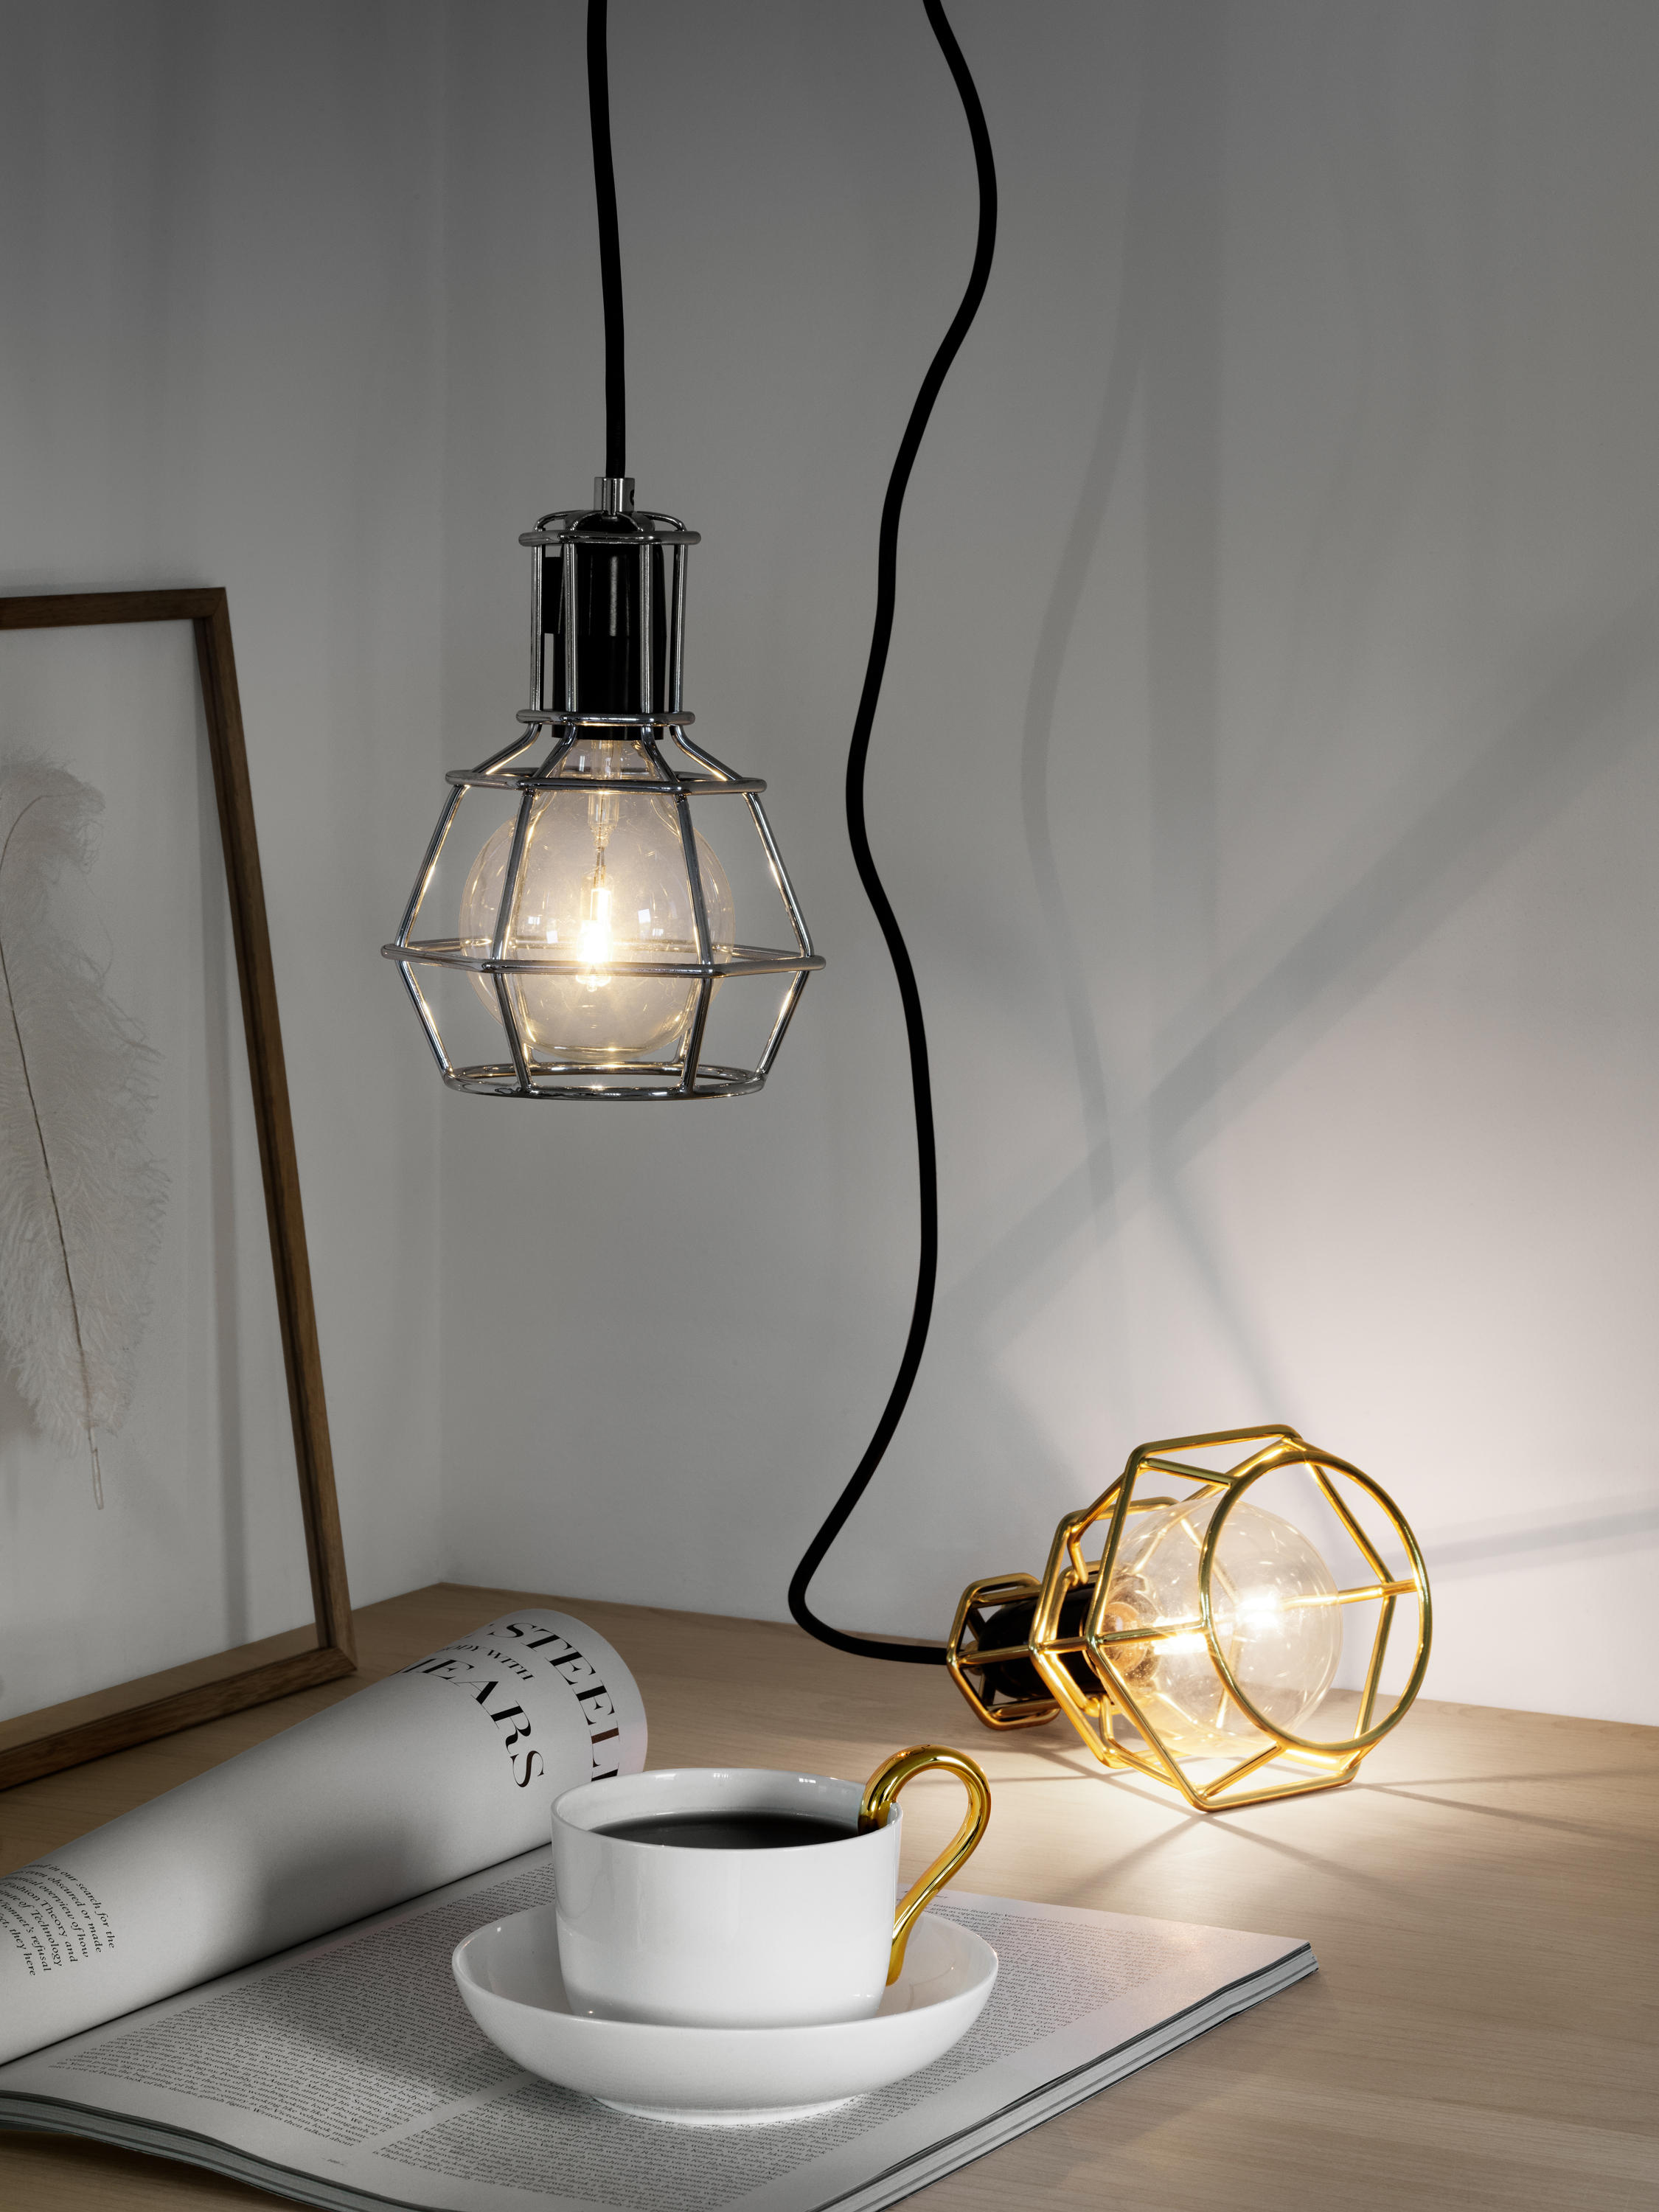 Work Lamp By Design House Stockholm Work Lamp By Design House Stockholm ...